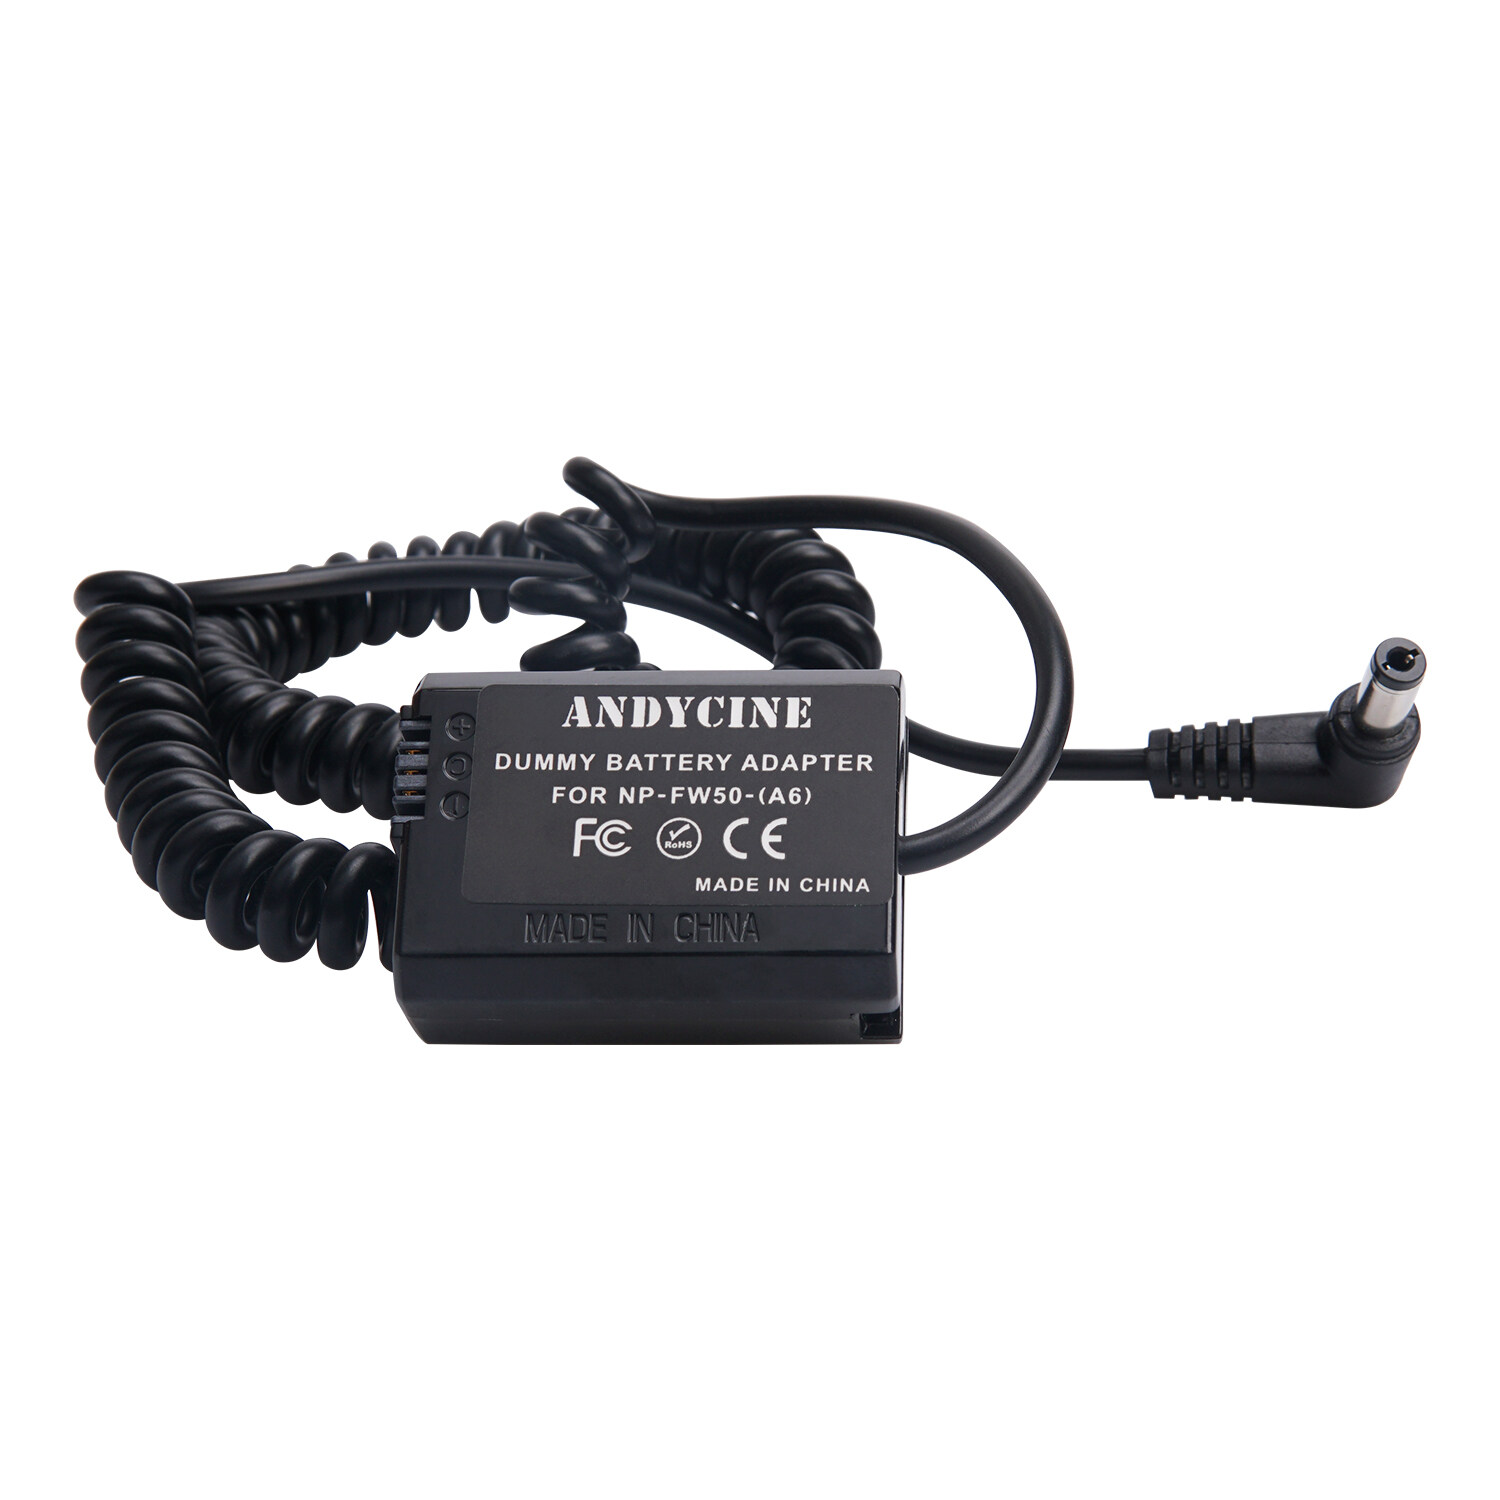 NP-FW50 Dummy Battery DC Coupler AC Power Source PW20 Power Supply Adapter for Sony Alpha A5100 A6500 A6400 A6300 A6100 A6000 A5000 A7 A7II A7RII A7SII A7S A7R A7R2 A7S2 A55 RX10 Cameras